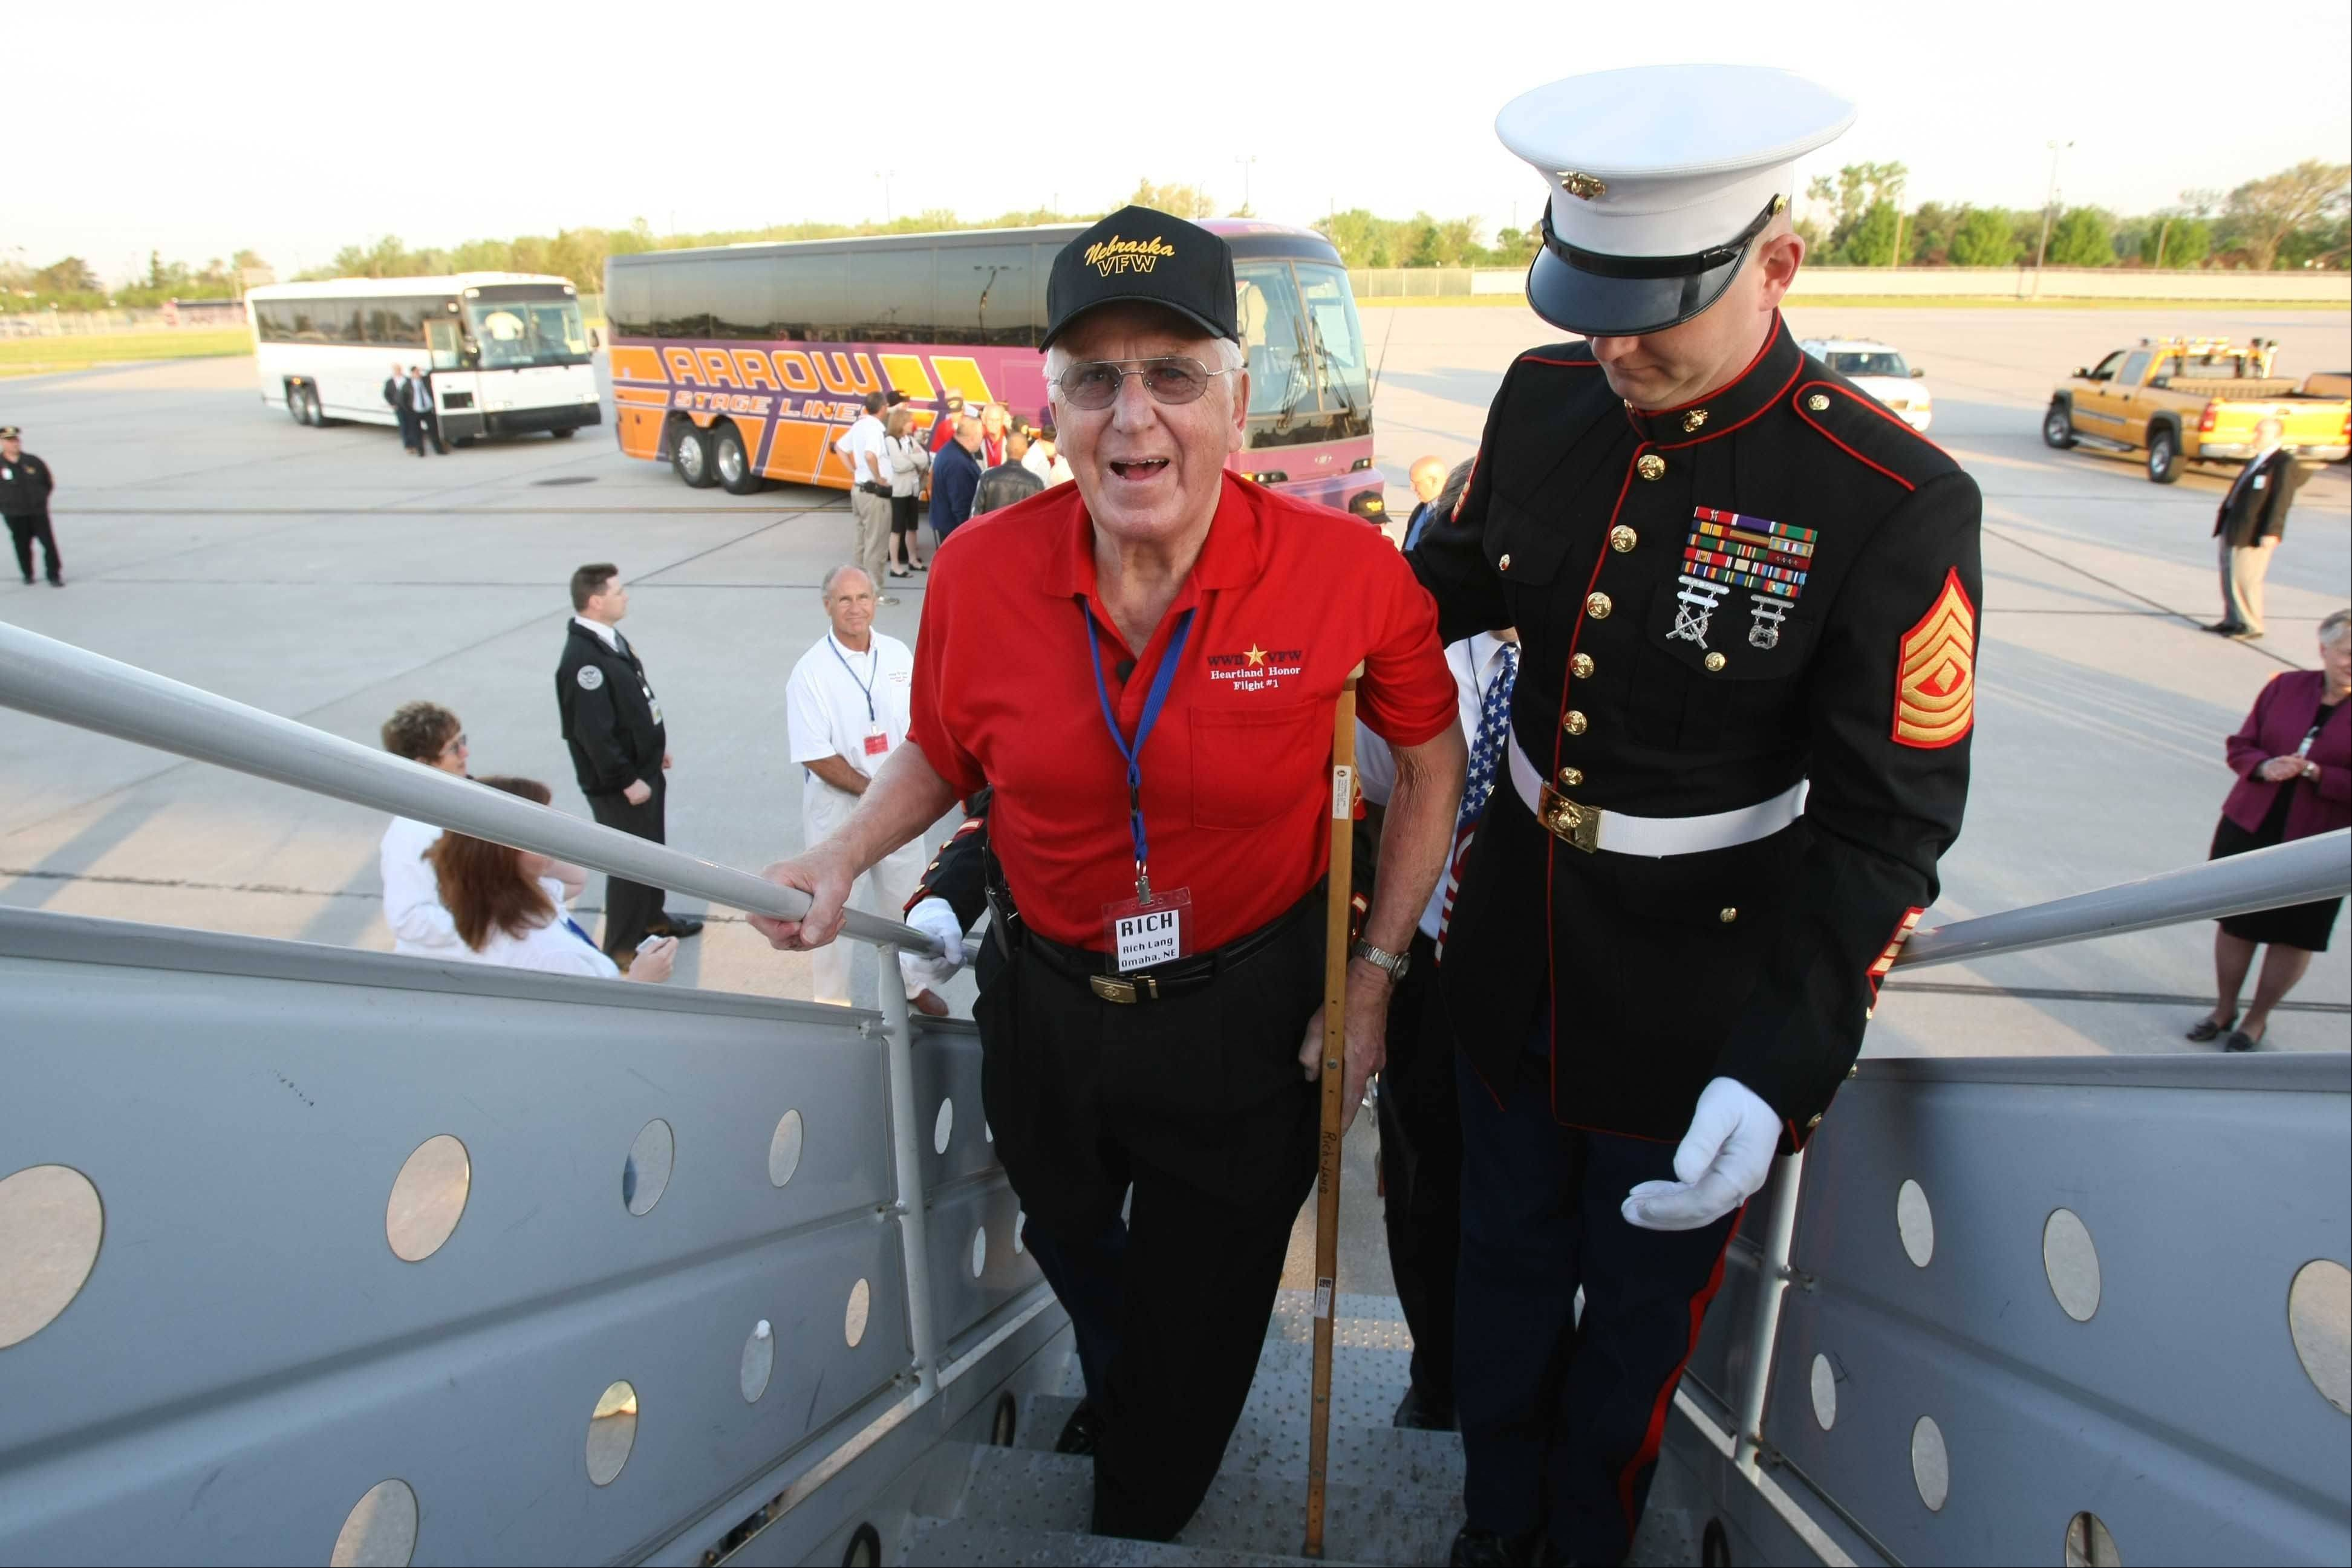 "In this May 21, 2008 photo, Richard Lang, whose right leg was amputated, is escorted up the flight stairs by Marine First Sgt. Wade Jensen at Eppley Airfield in Omaha, Neb. during an Honor Flight to Washington for World War II veterans. Bill Williams, whose company sponsored the event, advised him there was a steep set of plane stairs. ""I made my big mistake,"" Williams recalls. ""I said, 'We will carry you.' ... He said, 'Listen pal, I haven't been carried since Guam.'"""